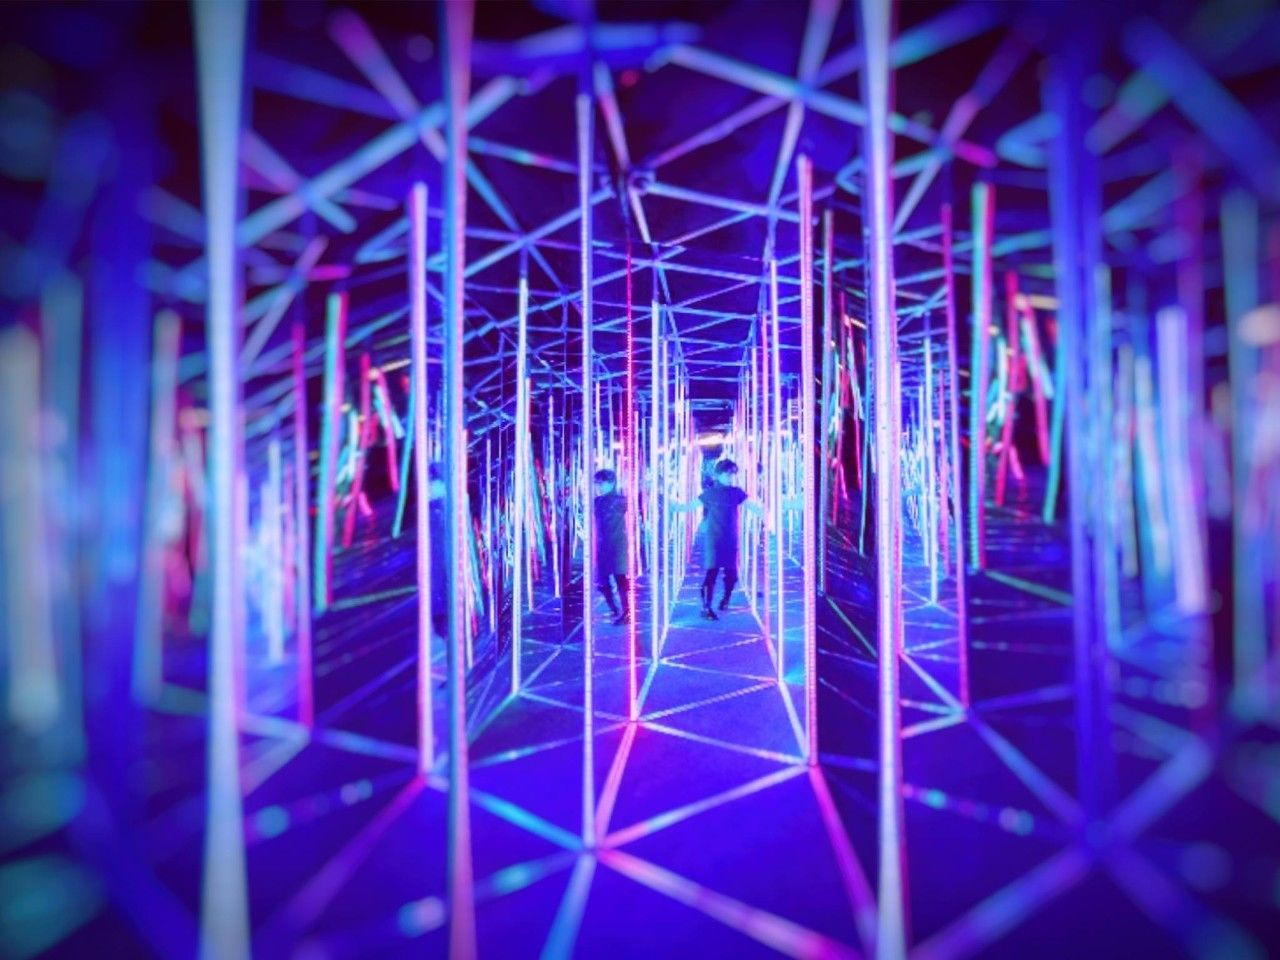 Colorful Mirror maze